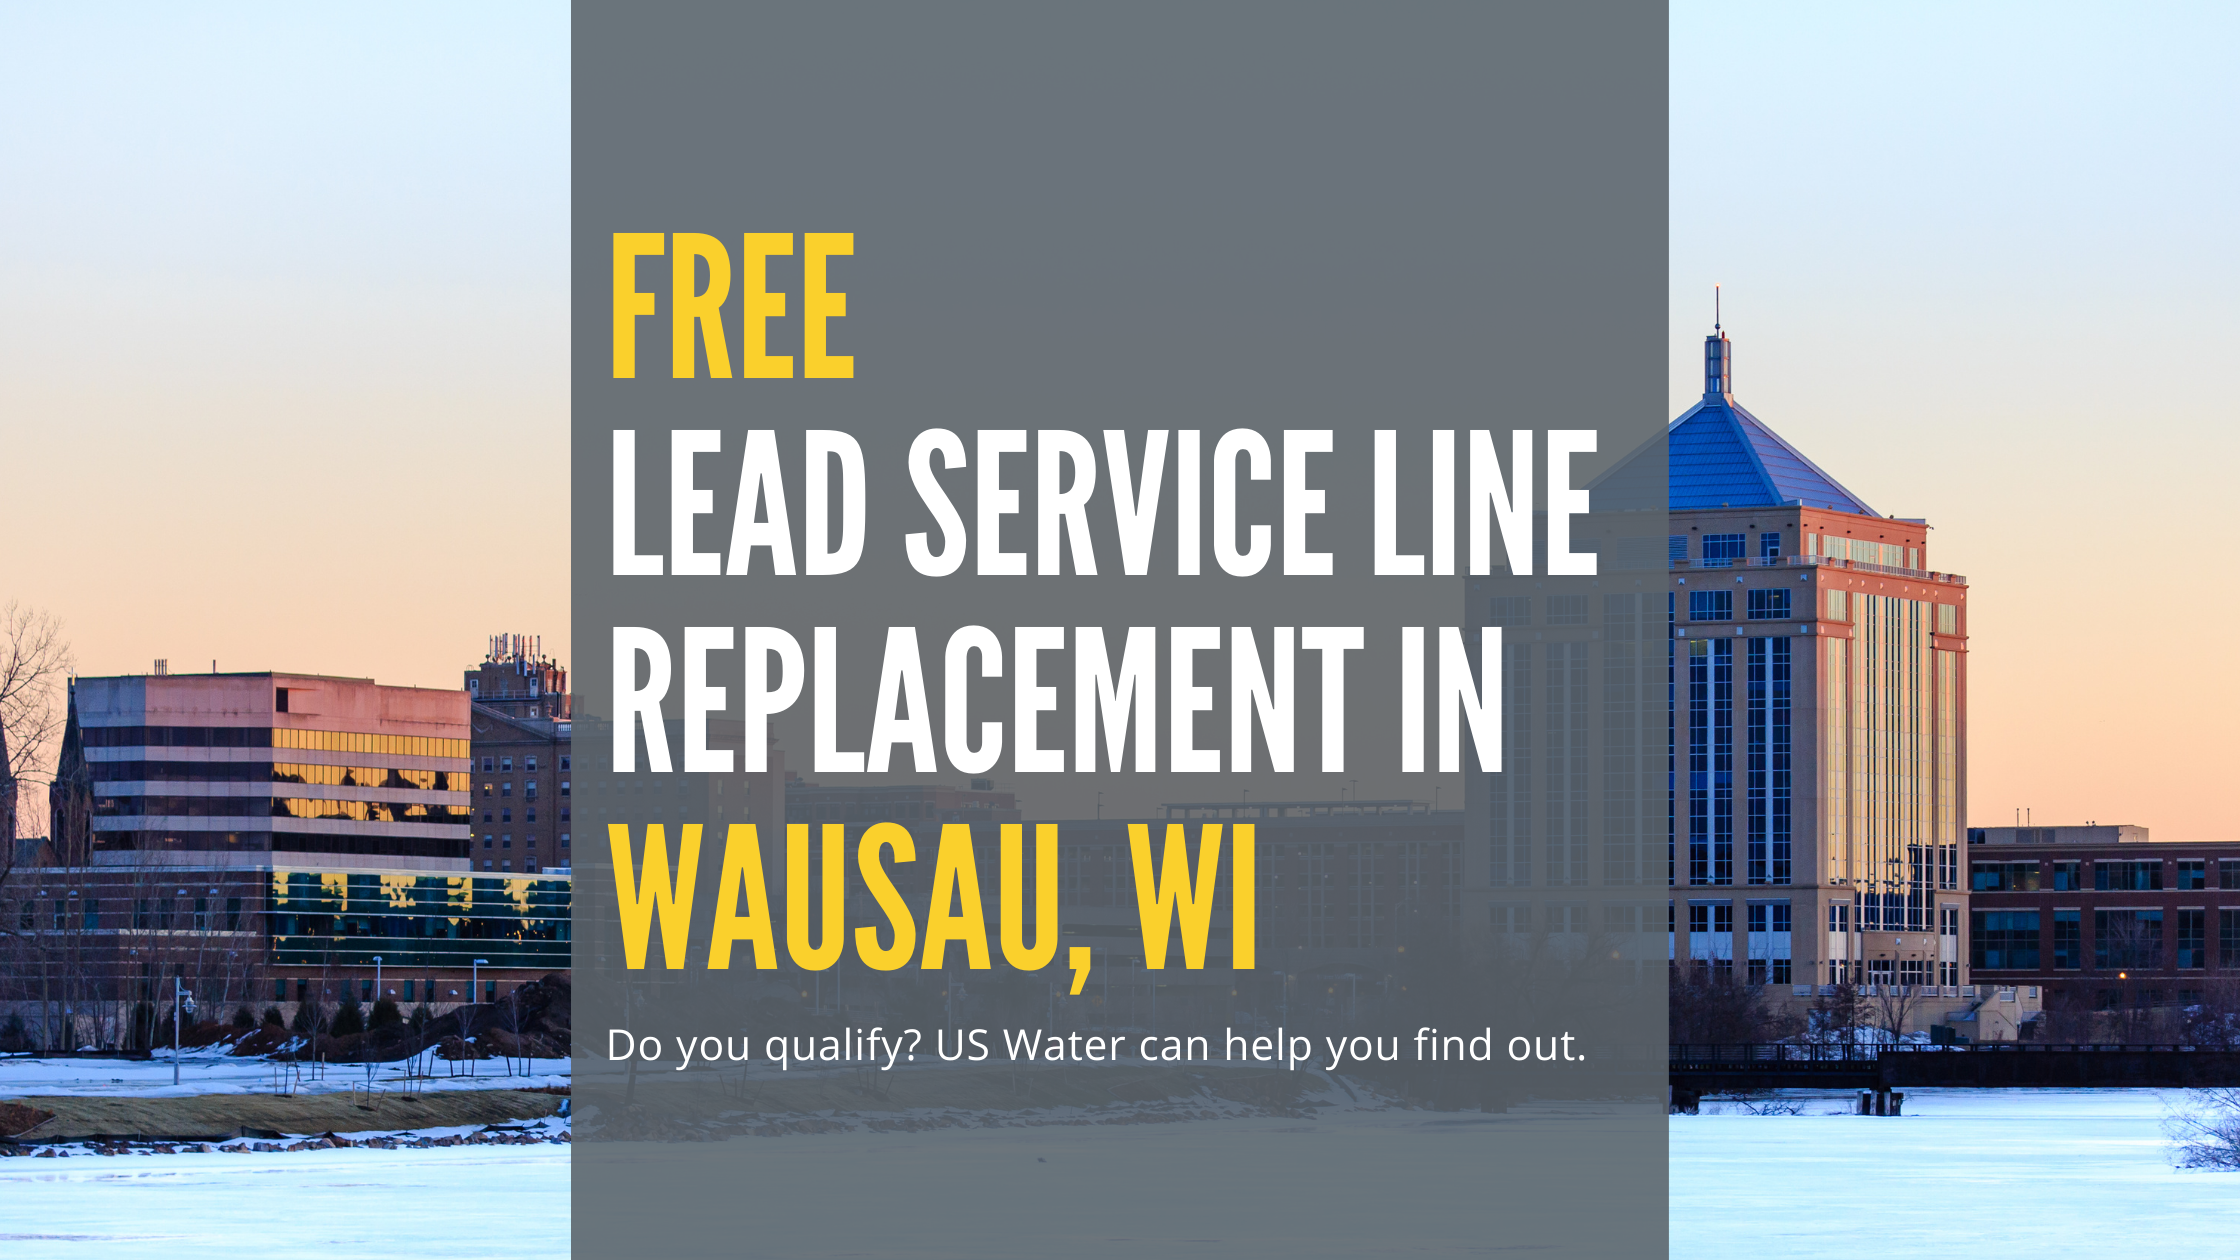 Free Lead Service Line Replacement in Wausau, Wi - find out if you qualify